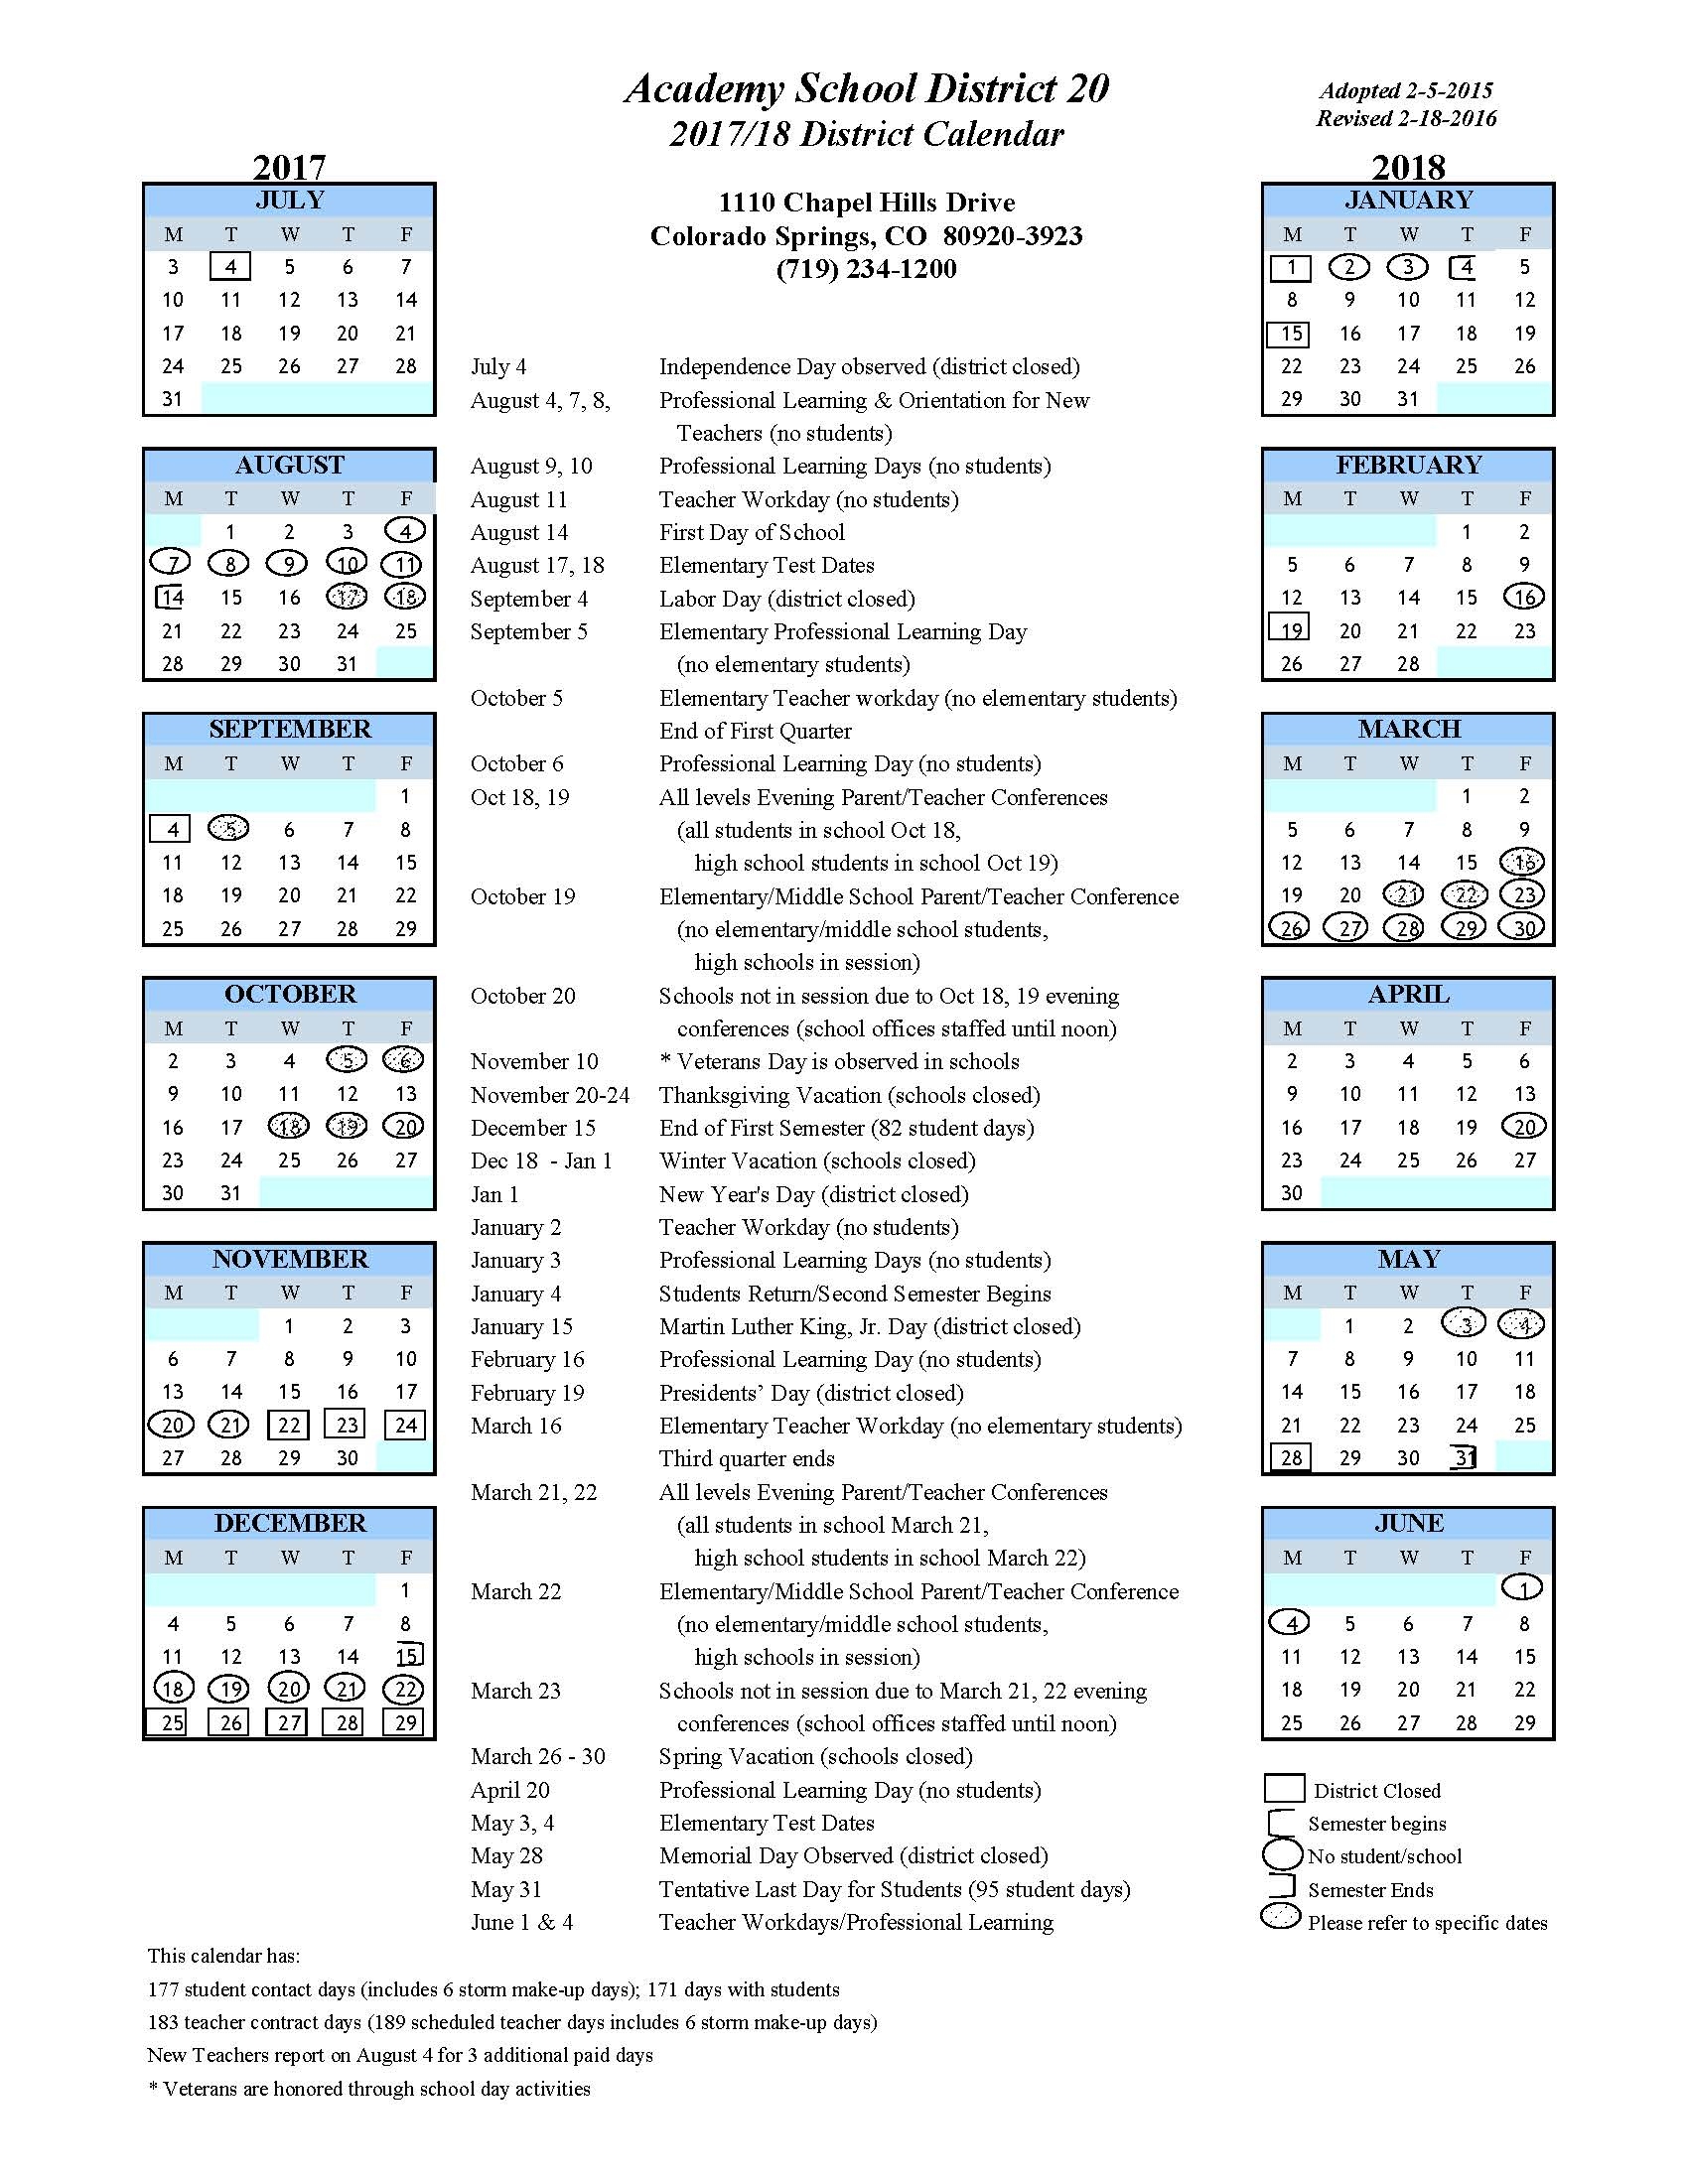 Look with District 20 Colorado Springs Calendar